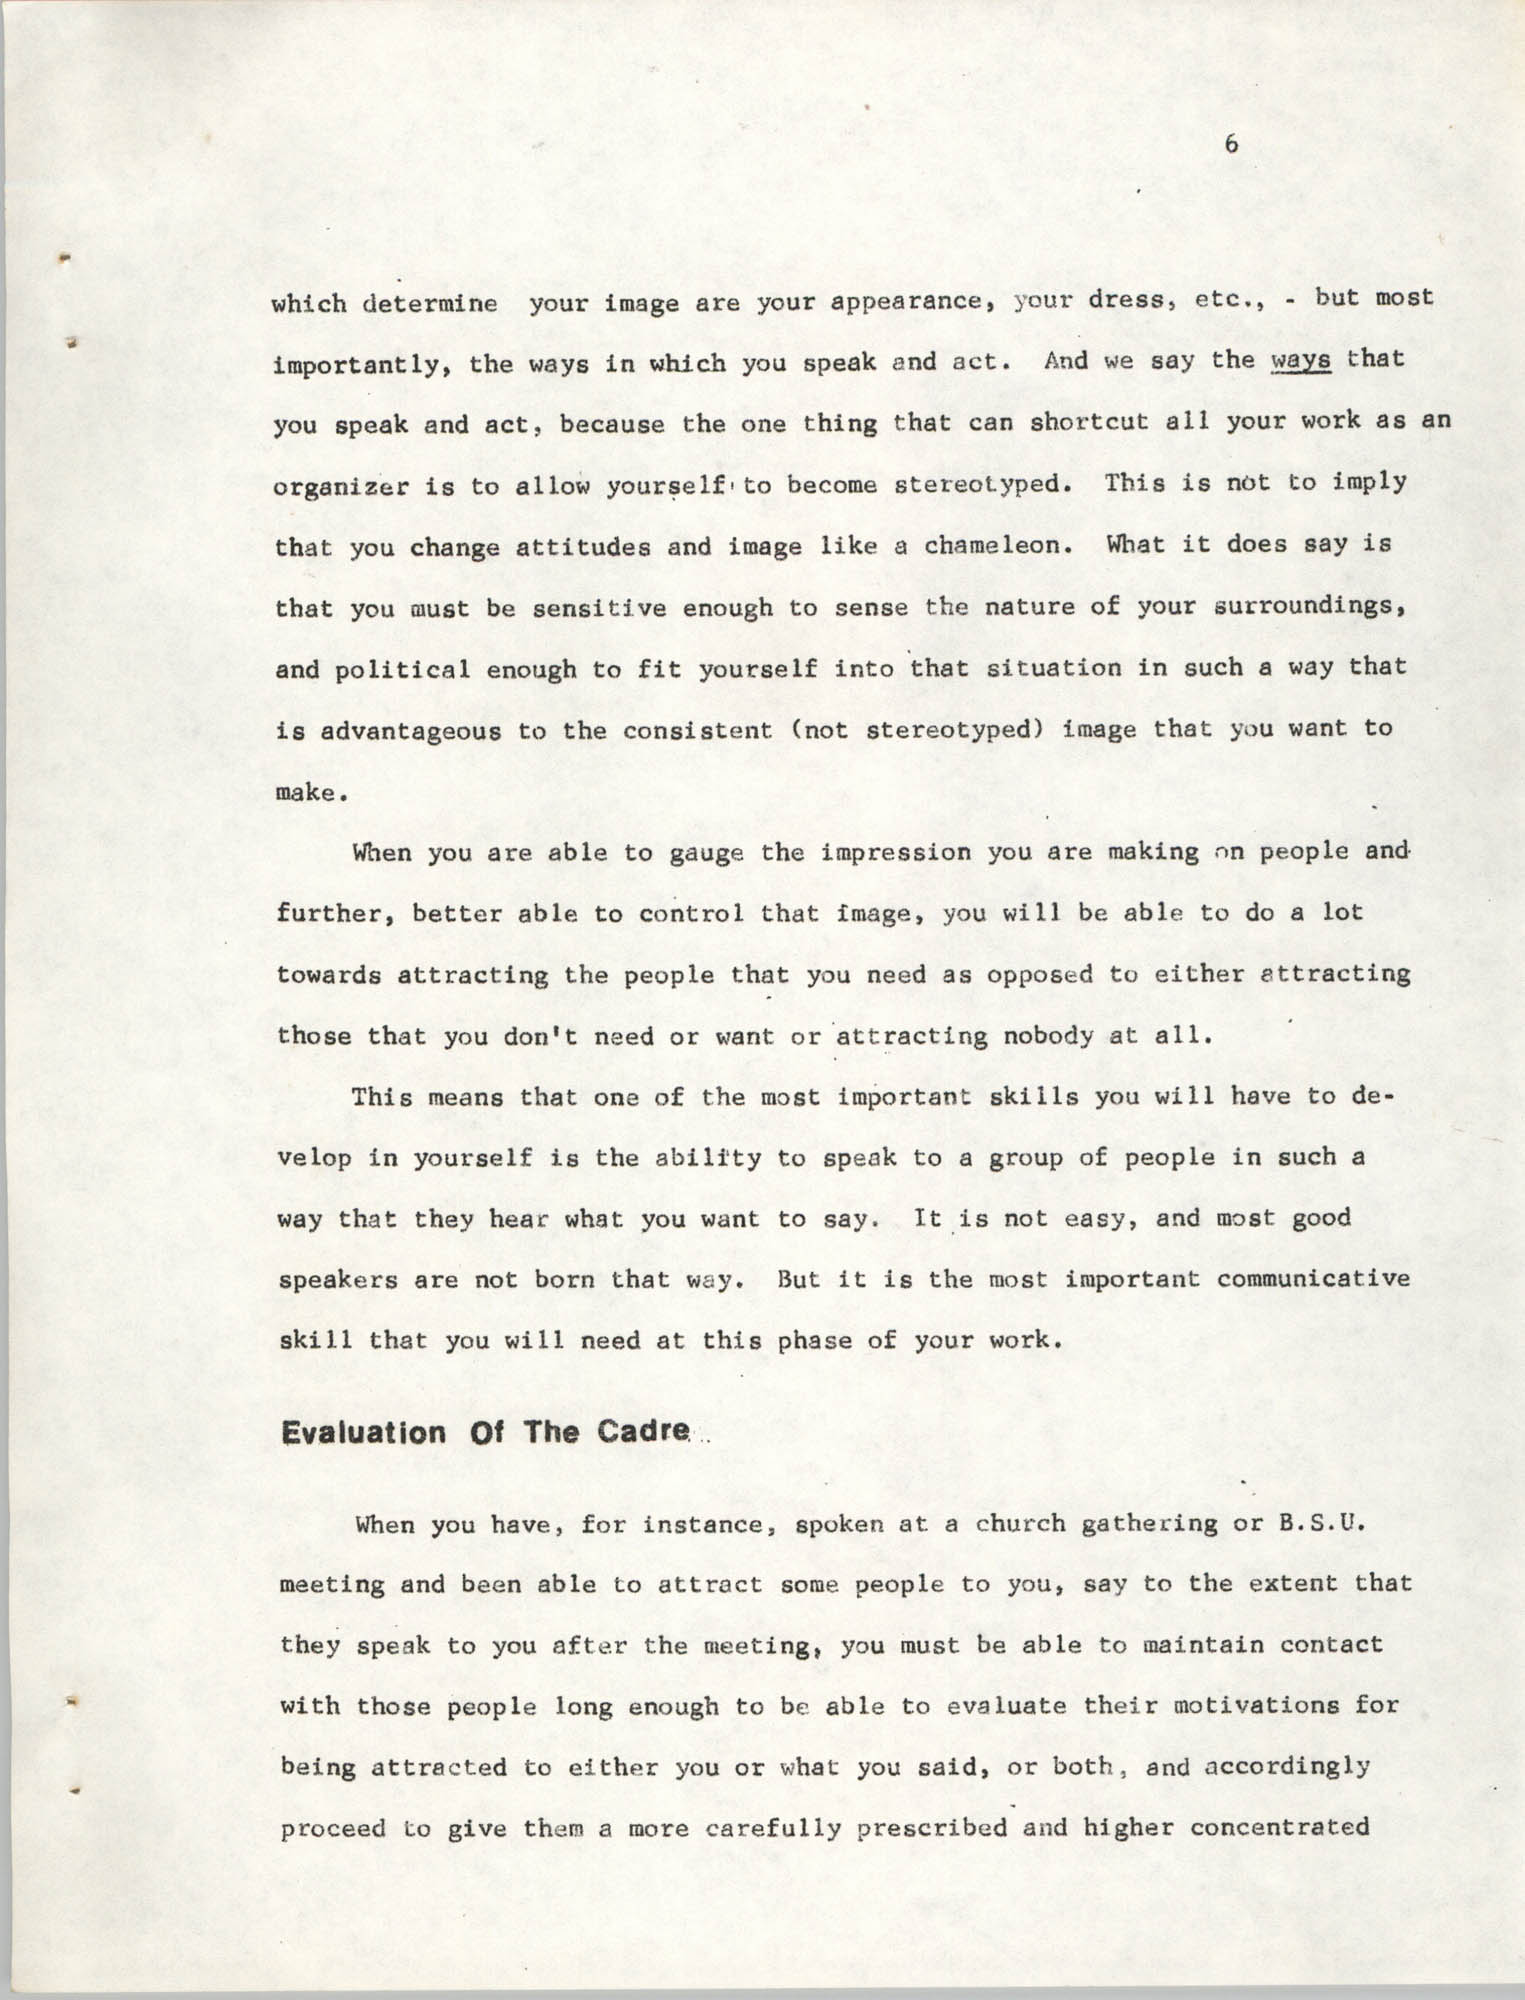 Developing Political Cadres, Page 6